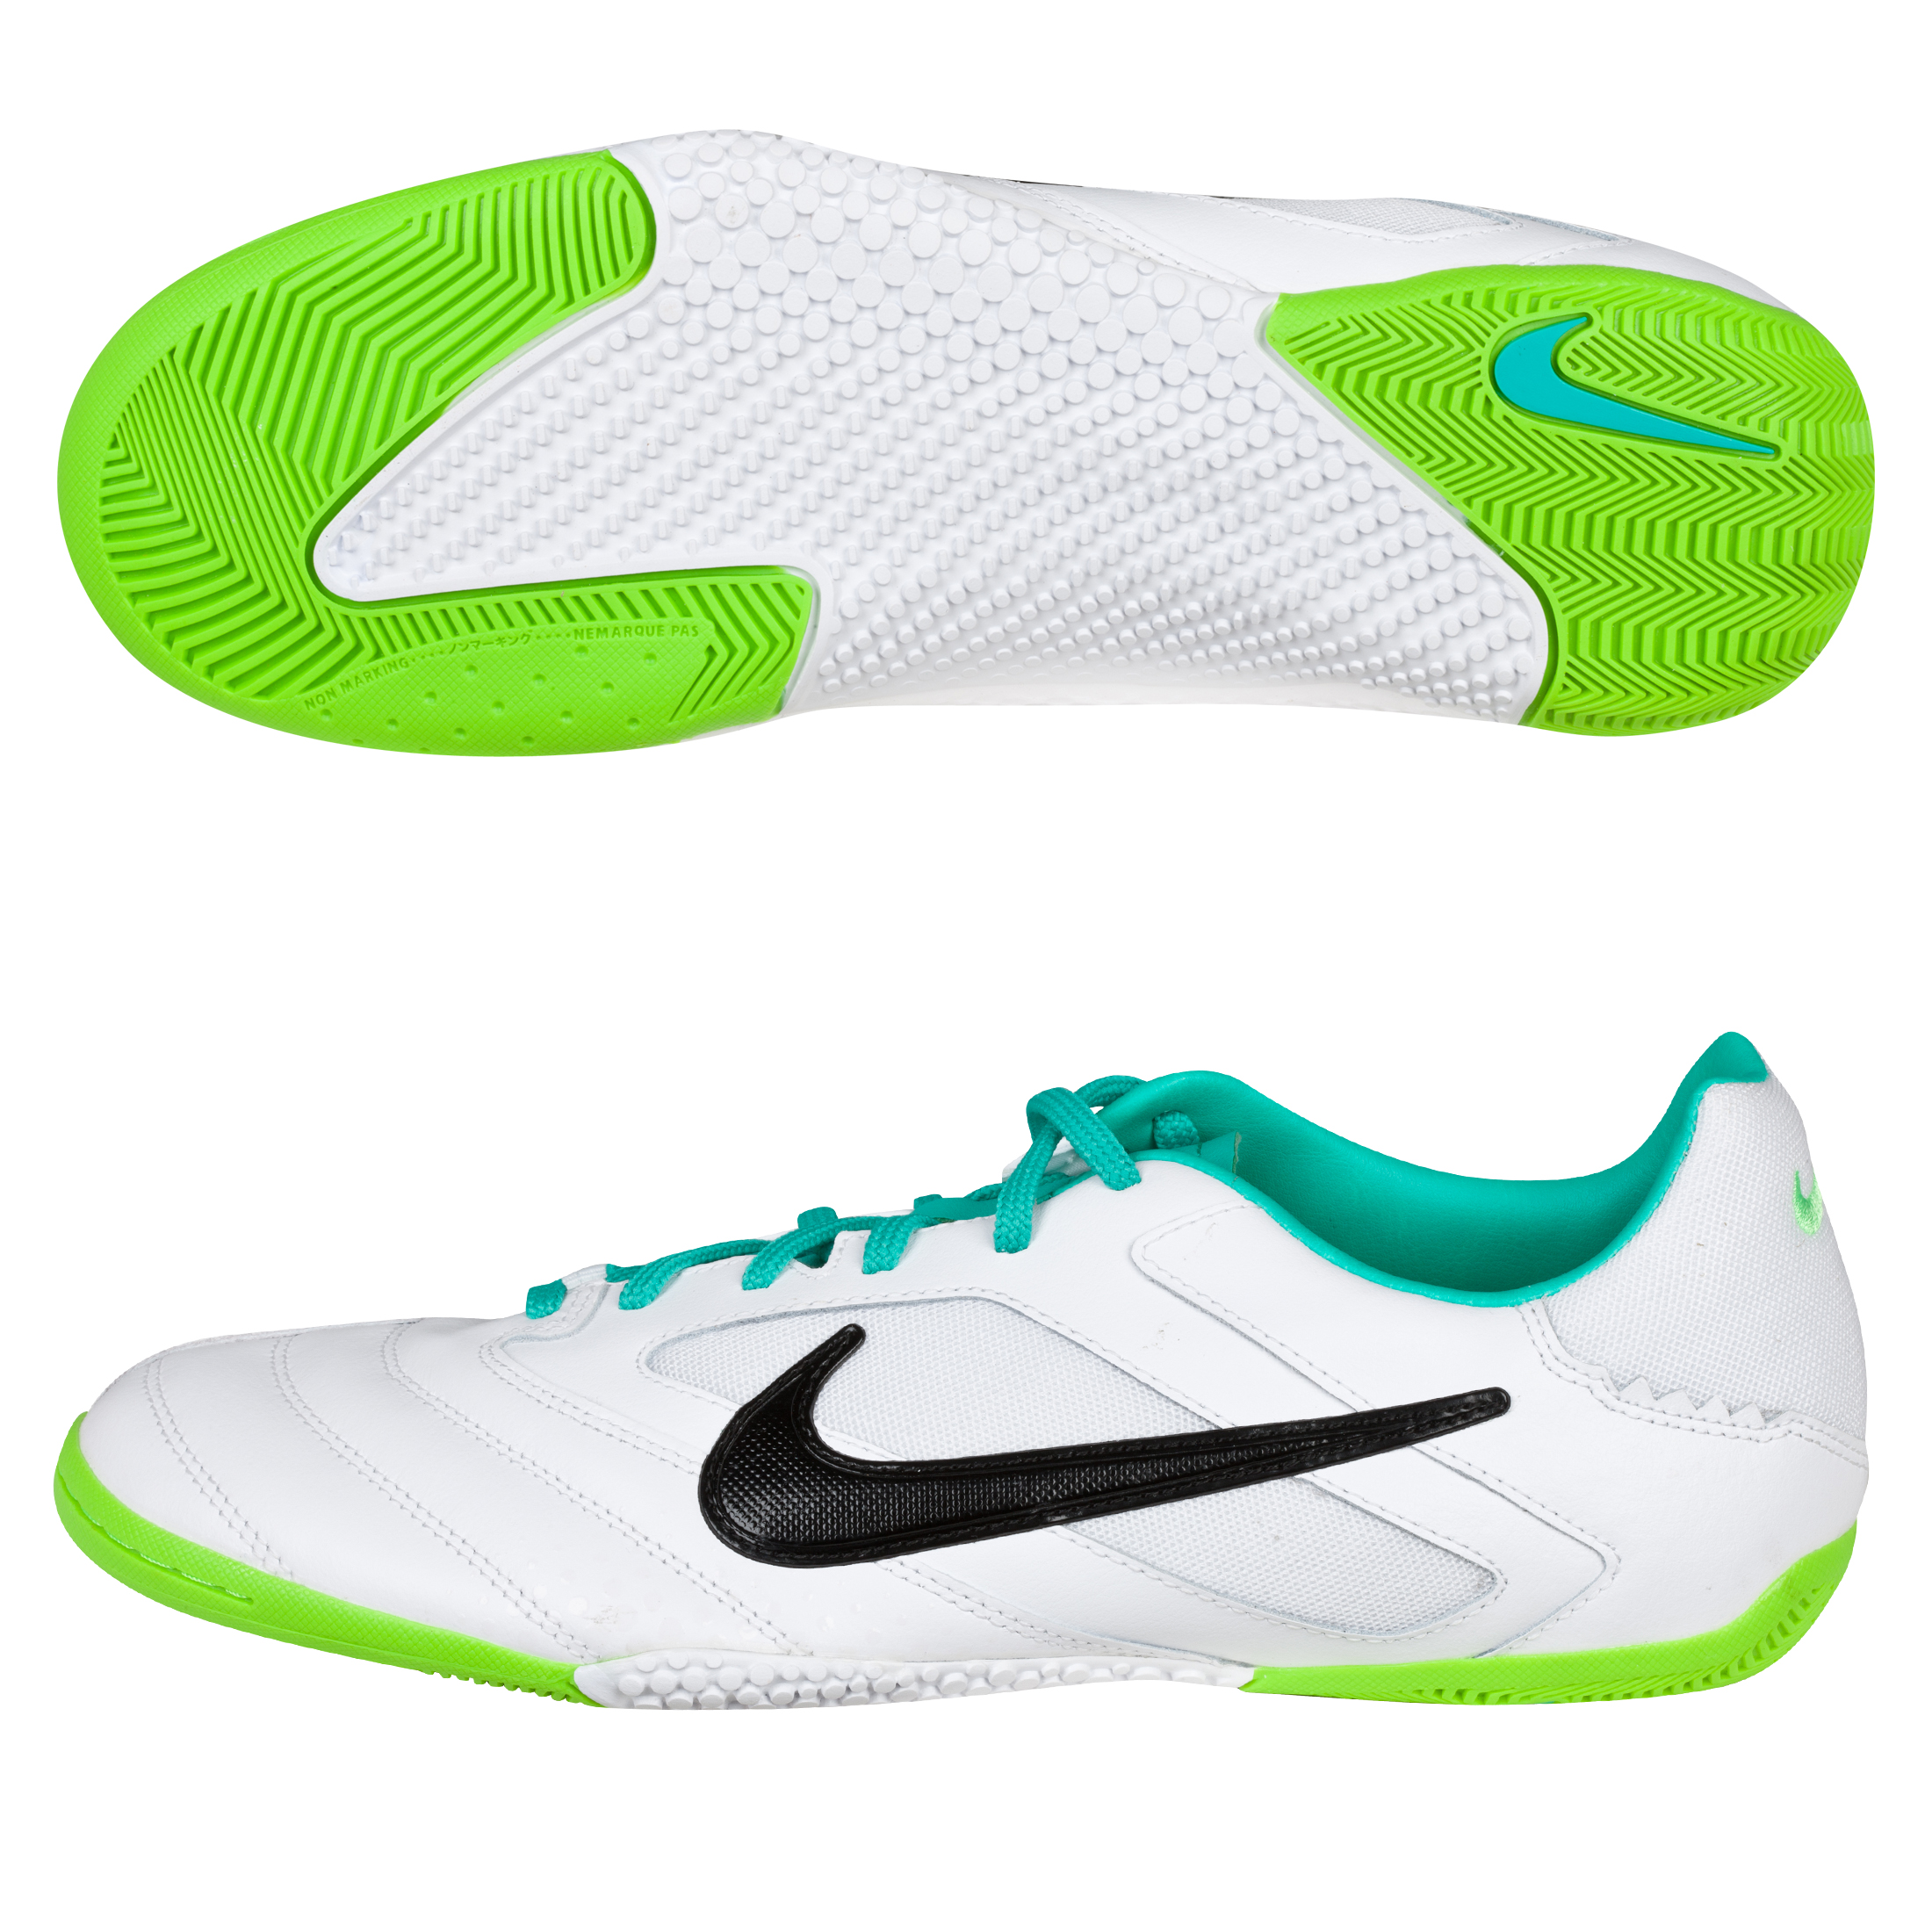 Nike Nike5 Elastico Pro Trainers - White/Black/Electric Green